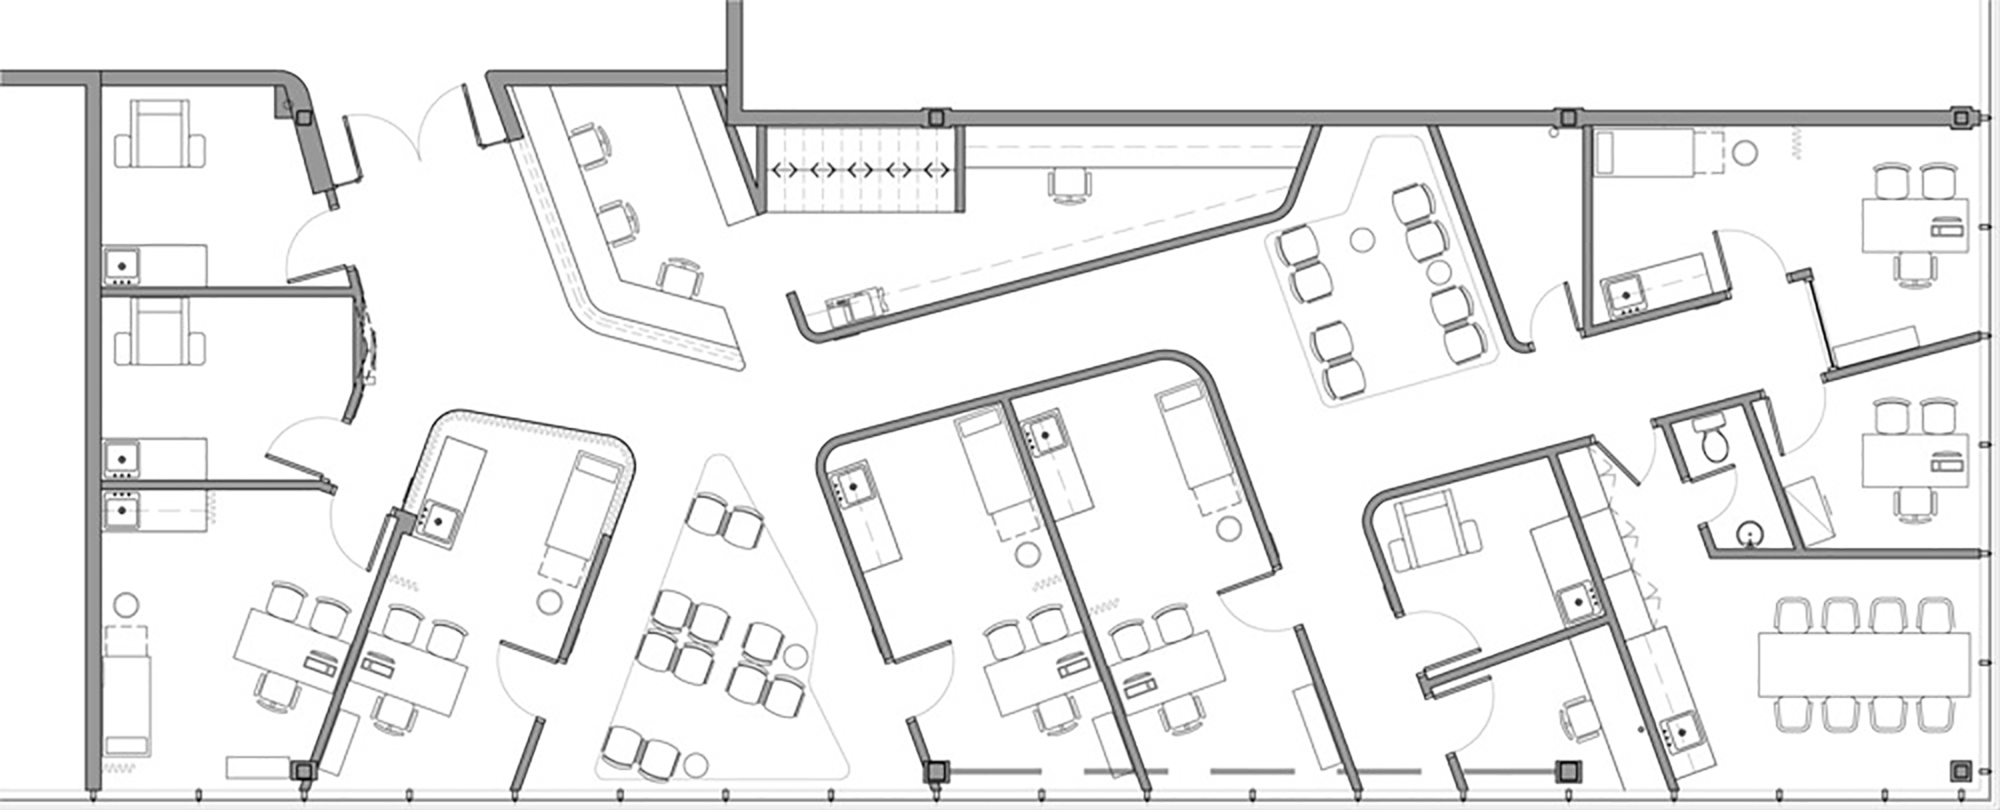 Gallery of uniprix pharmacy and medical center jean de Pharmacy floor plans